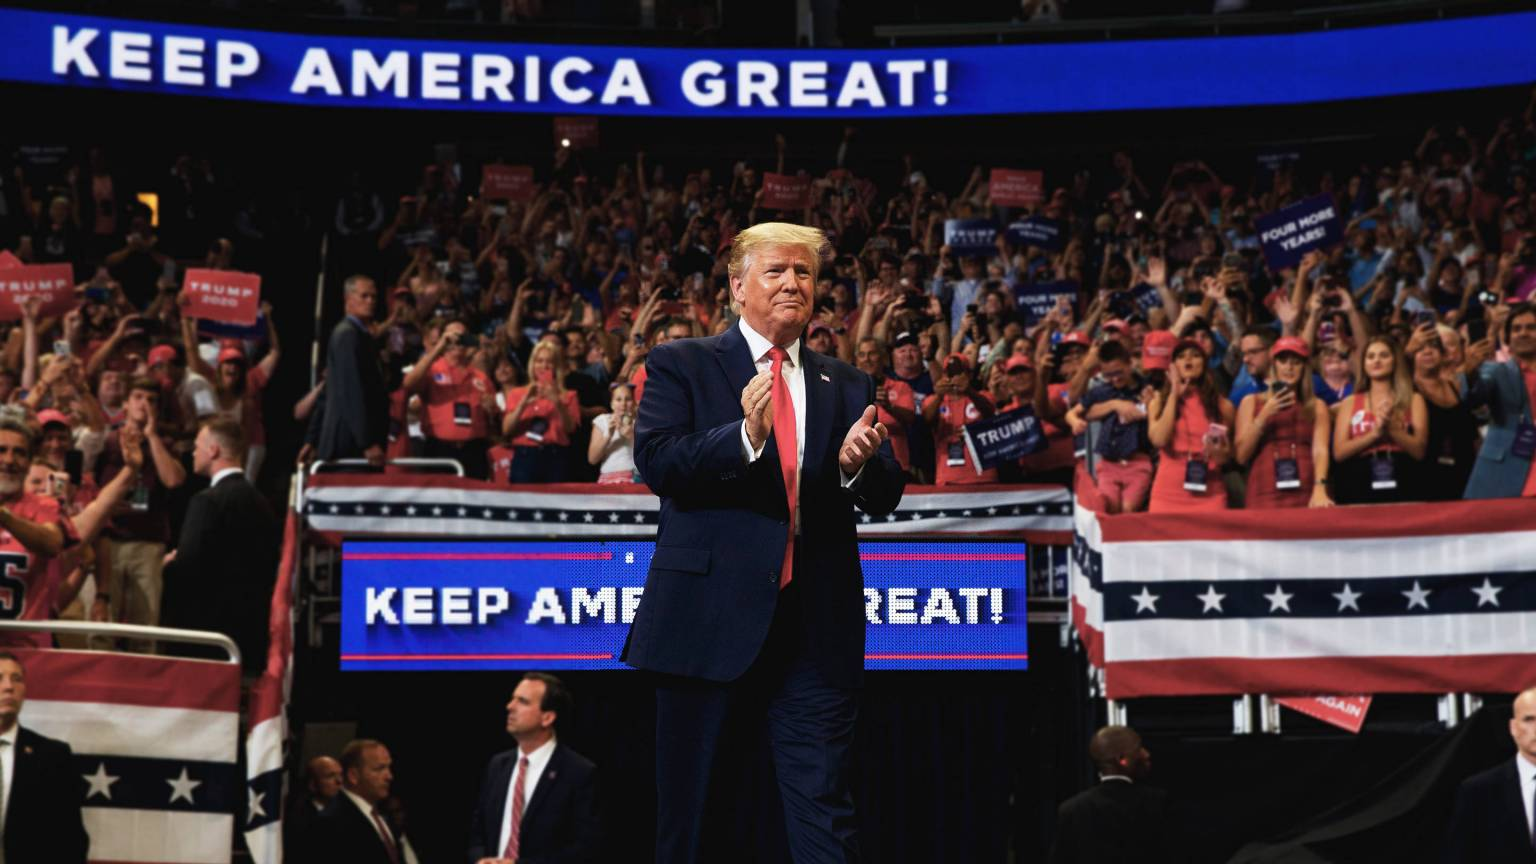 Keep America Great! Trump's Reelection Campaign Kicks Off